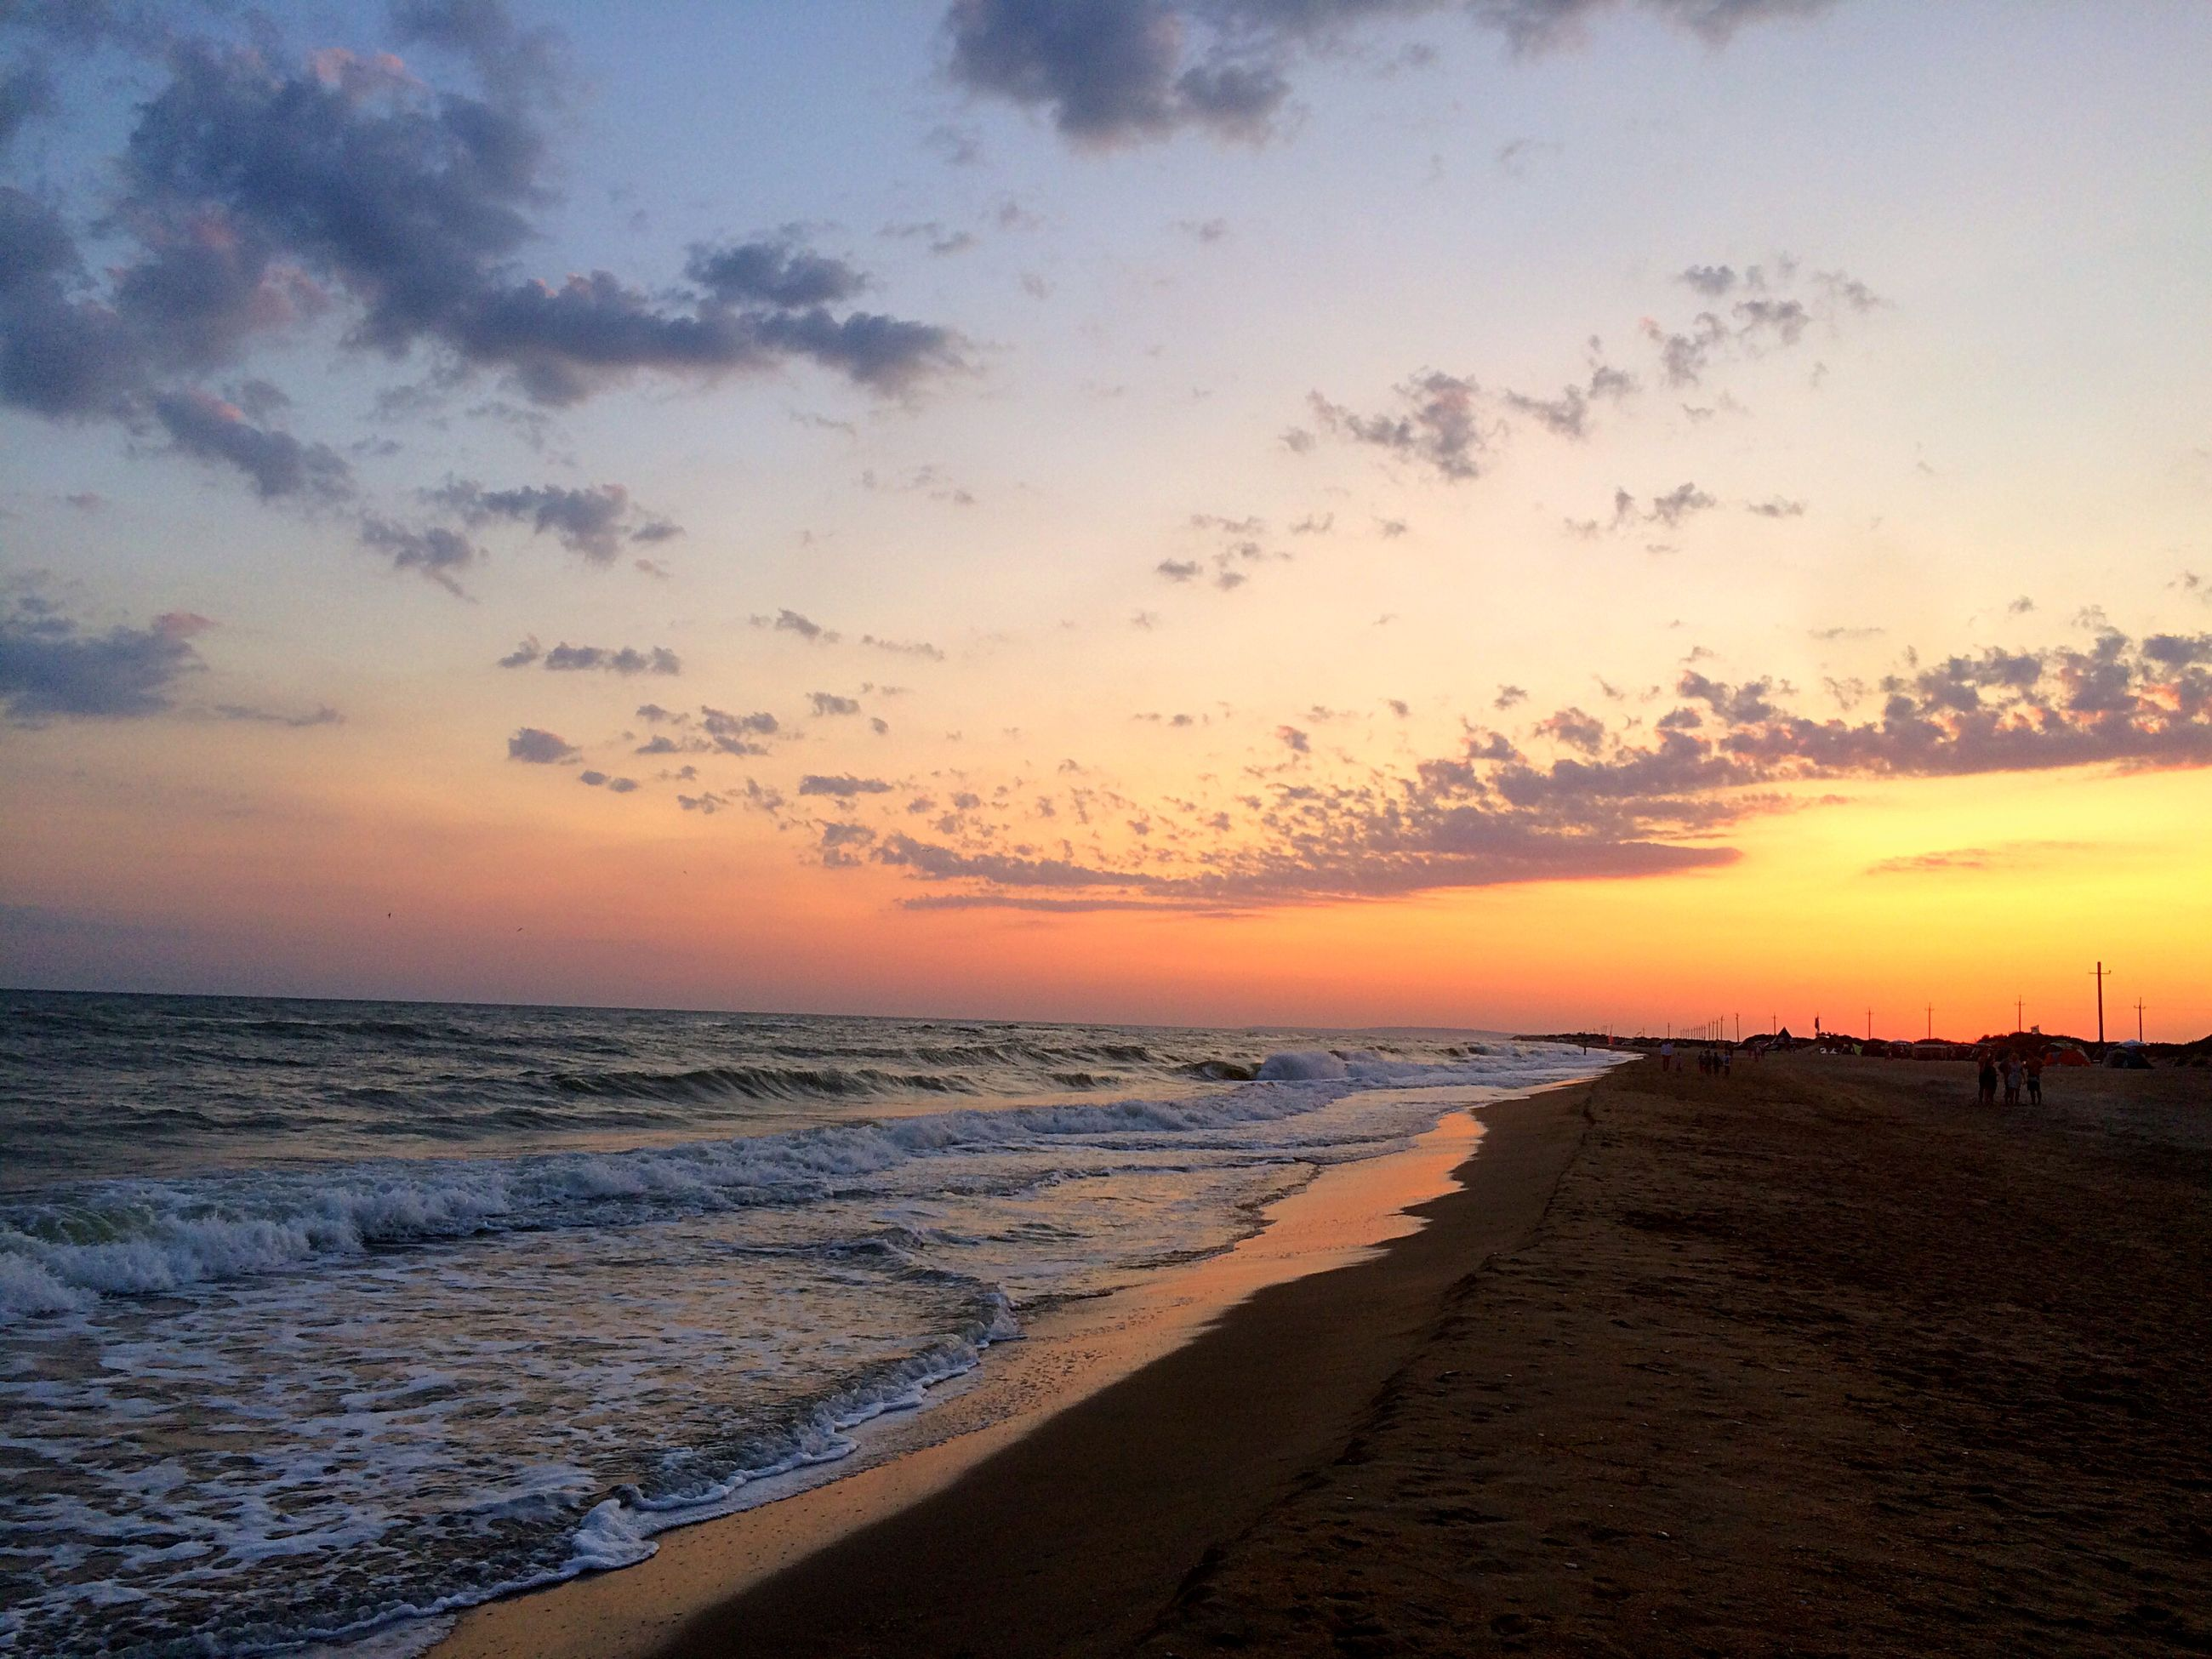 sea, beach, horizon over water, sunset, water, scenics, shore, tranquil scene, sky, beauty in nature, tranquility, sand, orange color, nature, idyllic, wave, cloud - sky, coastline, silhouette, incidental people